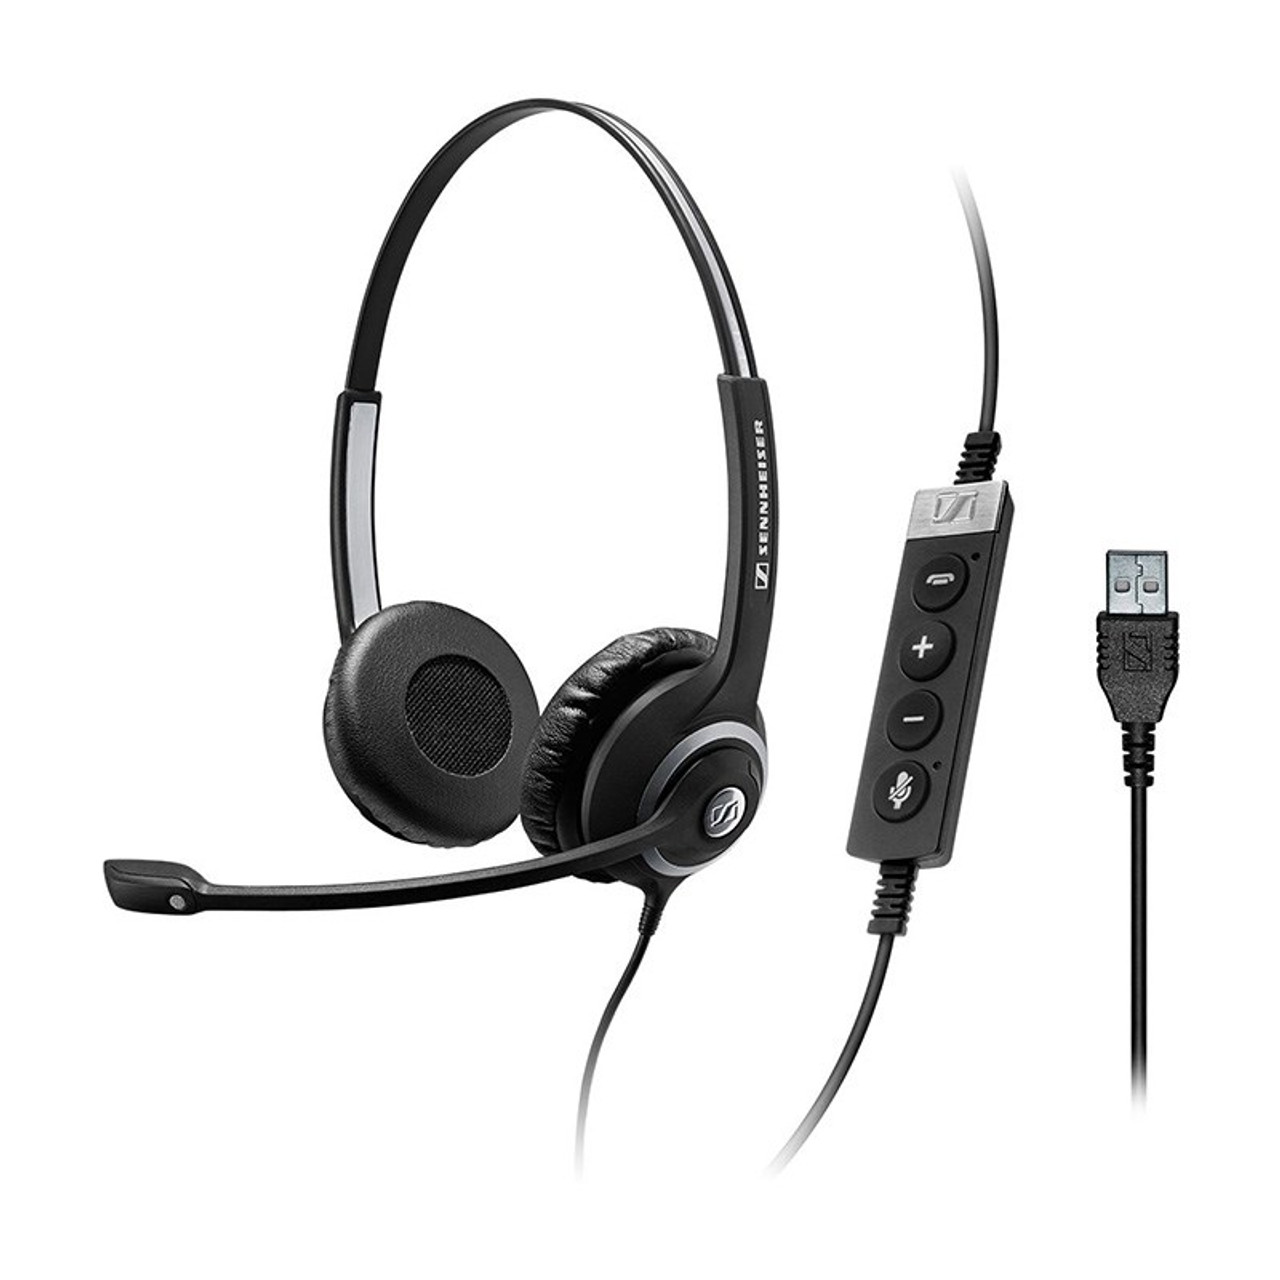 Image for Sennheiser Impact SC 260 MS II Stereo USB Headset CX Computer Superstore